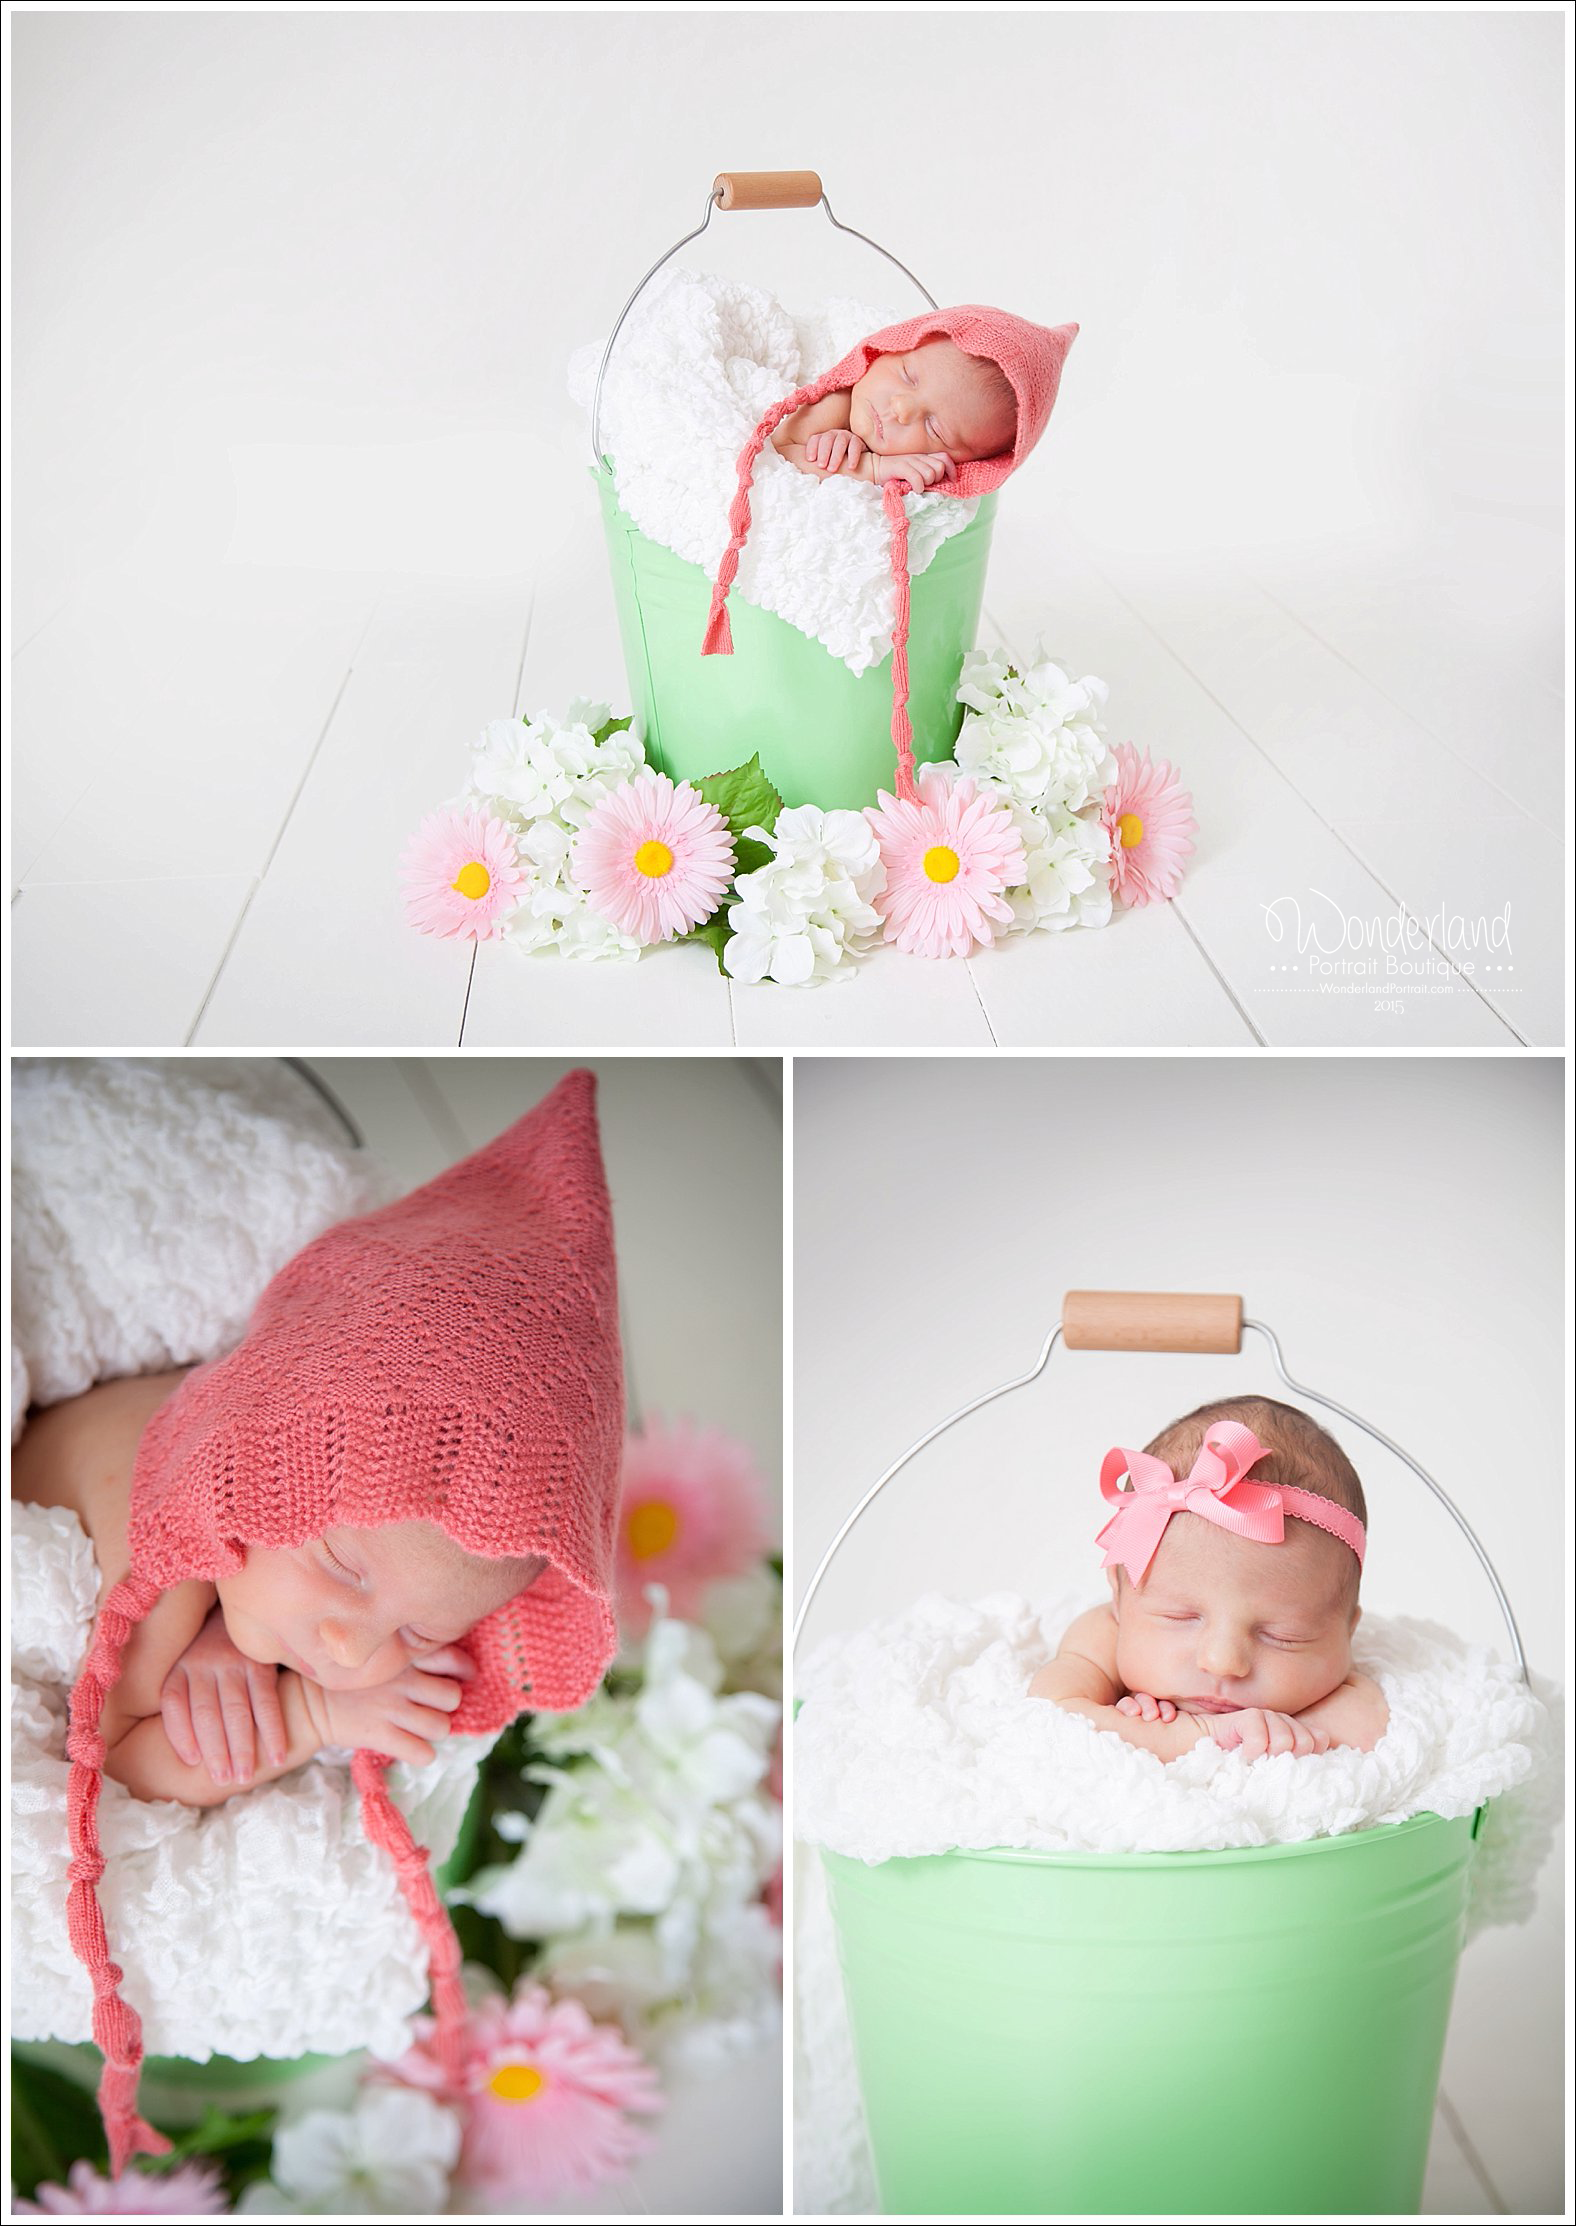 Bucks County PA photography Newborn in Bucket Posing Ideas | WonderlandPortrait.com